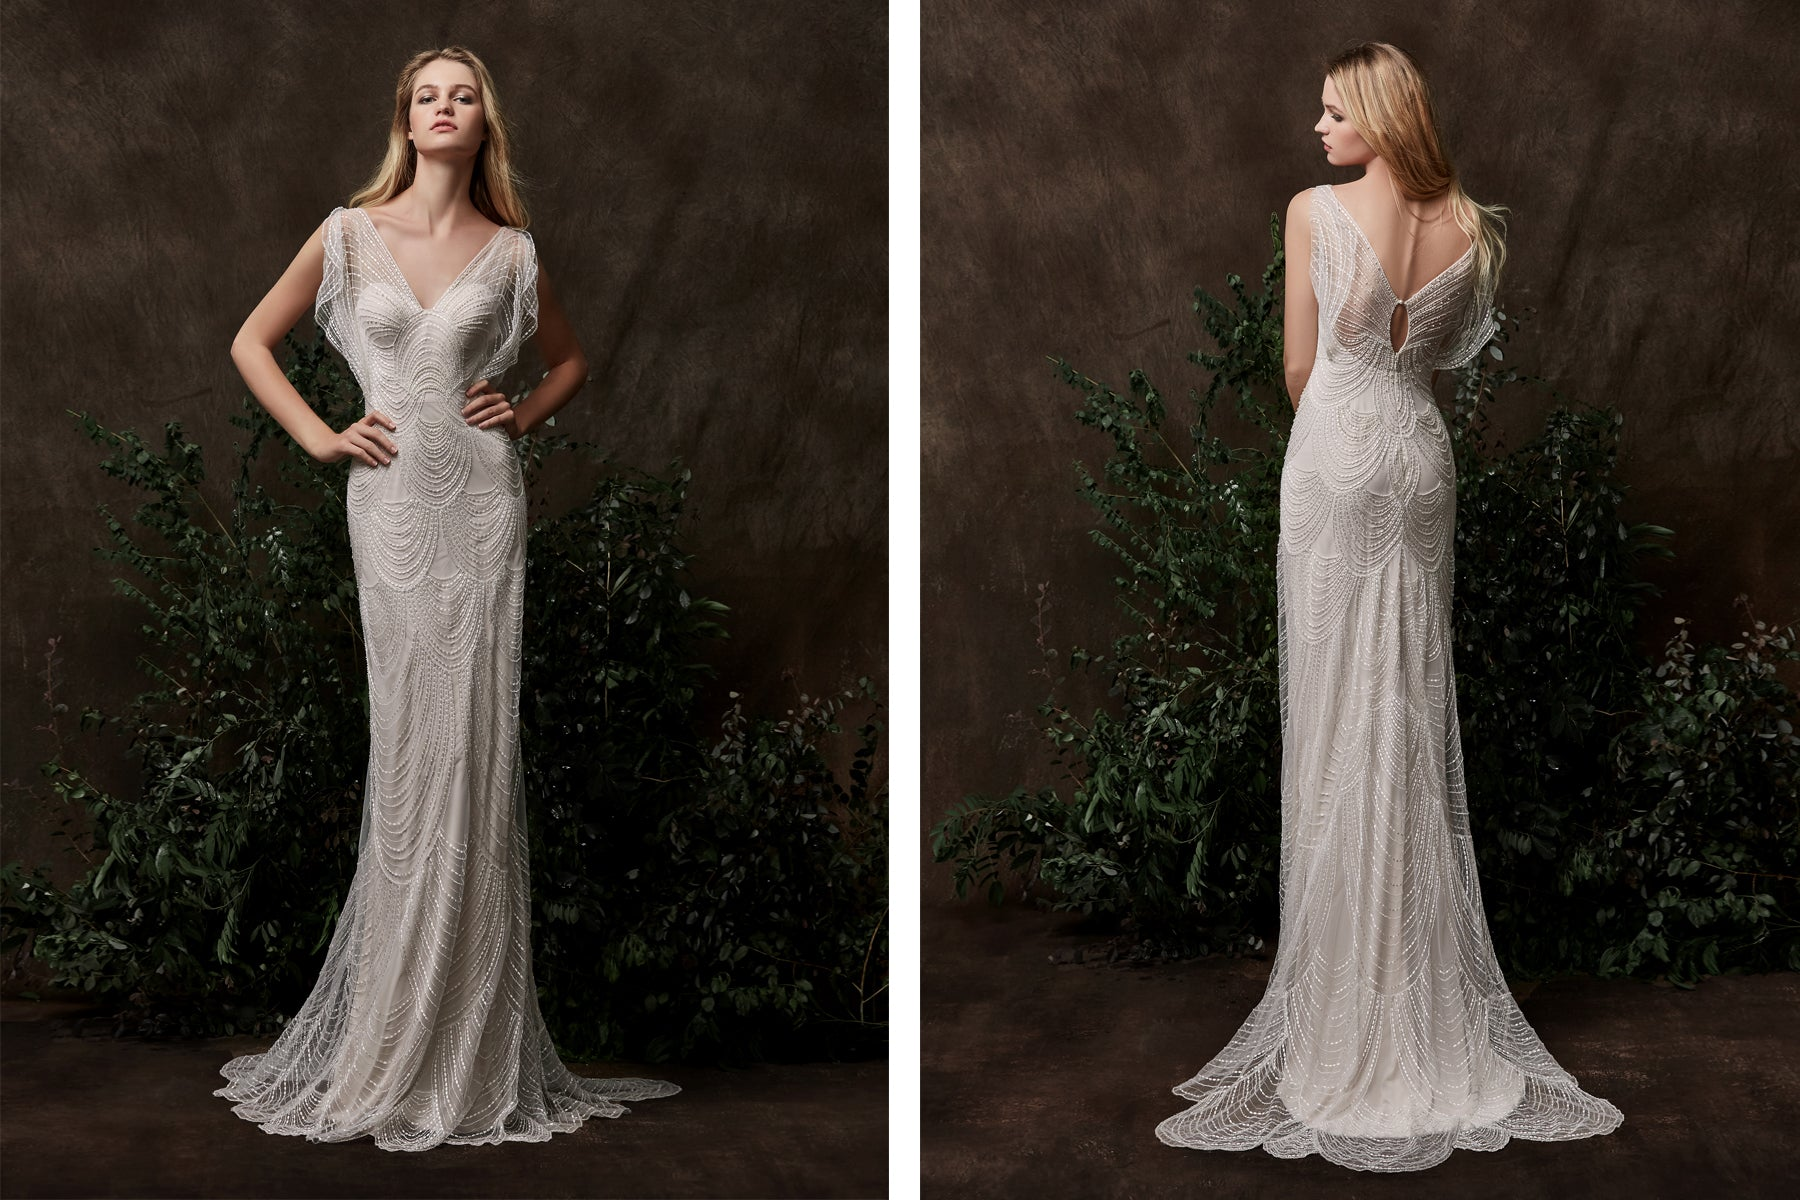 Eternal_Bridal_Affordable_Boho_Luxe_Chic_Nostalgia_Fern